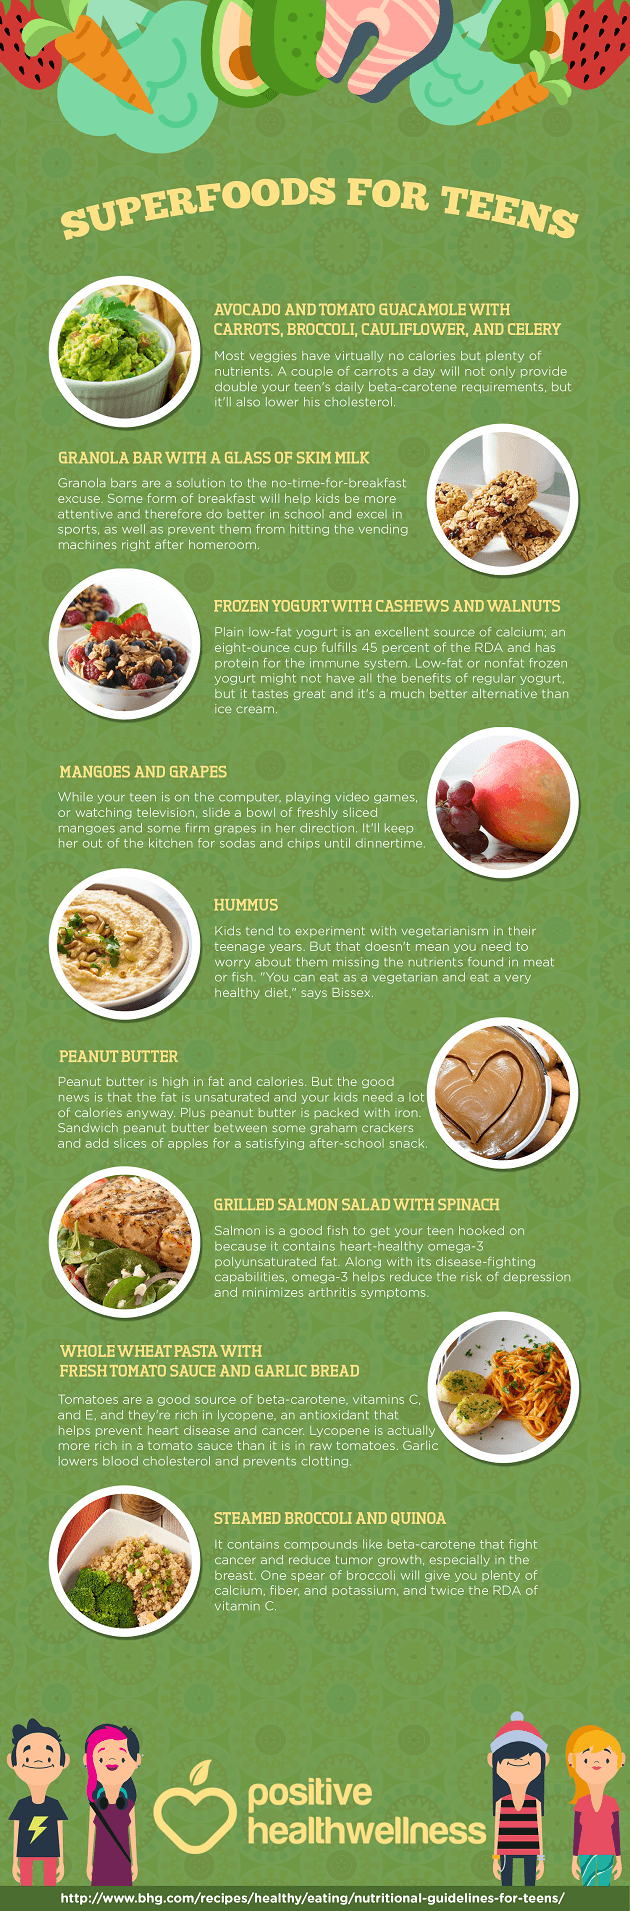 17 Superfoods For Teens